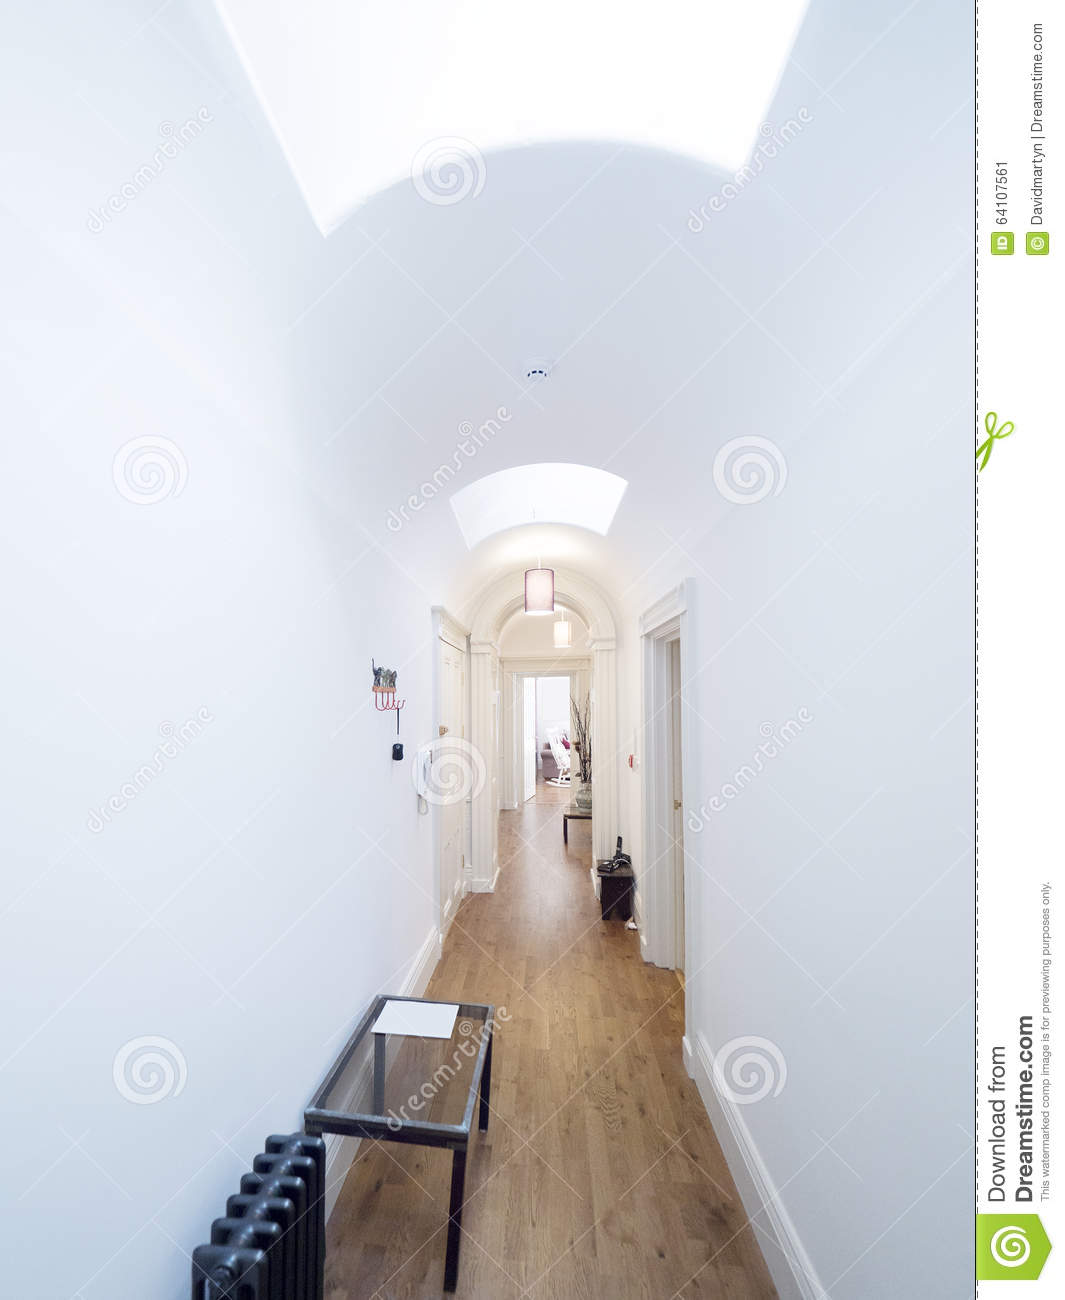 Hallway Stock Image. Image Of Home, Constructioncategory